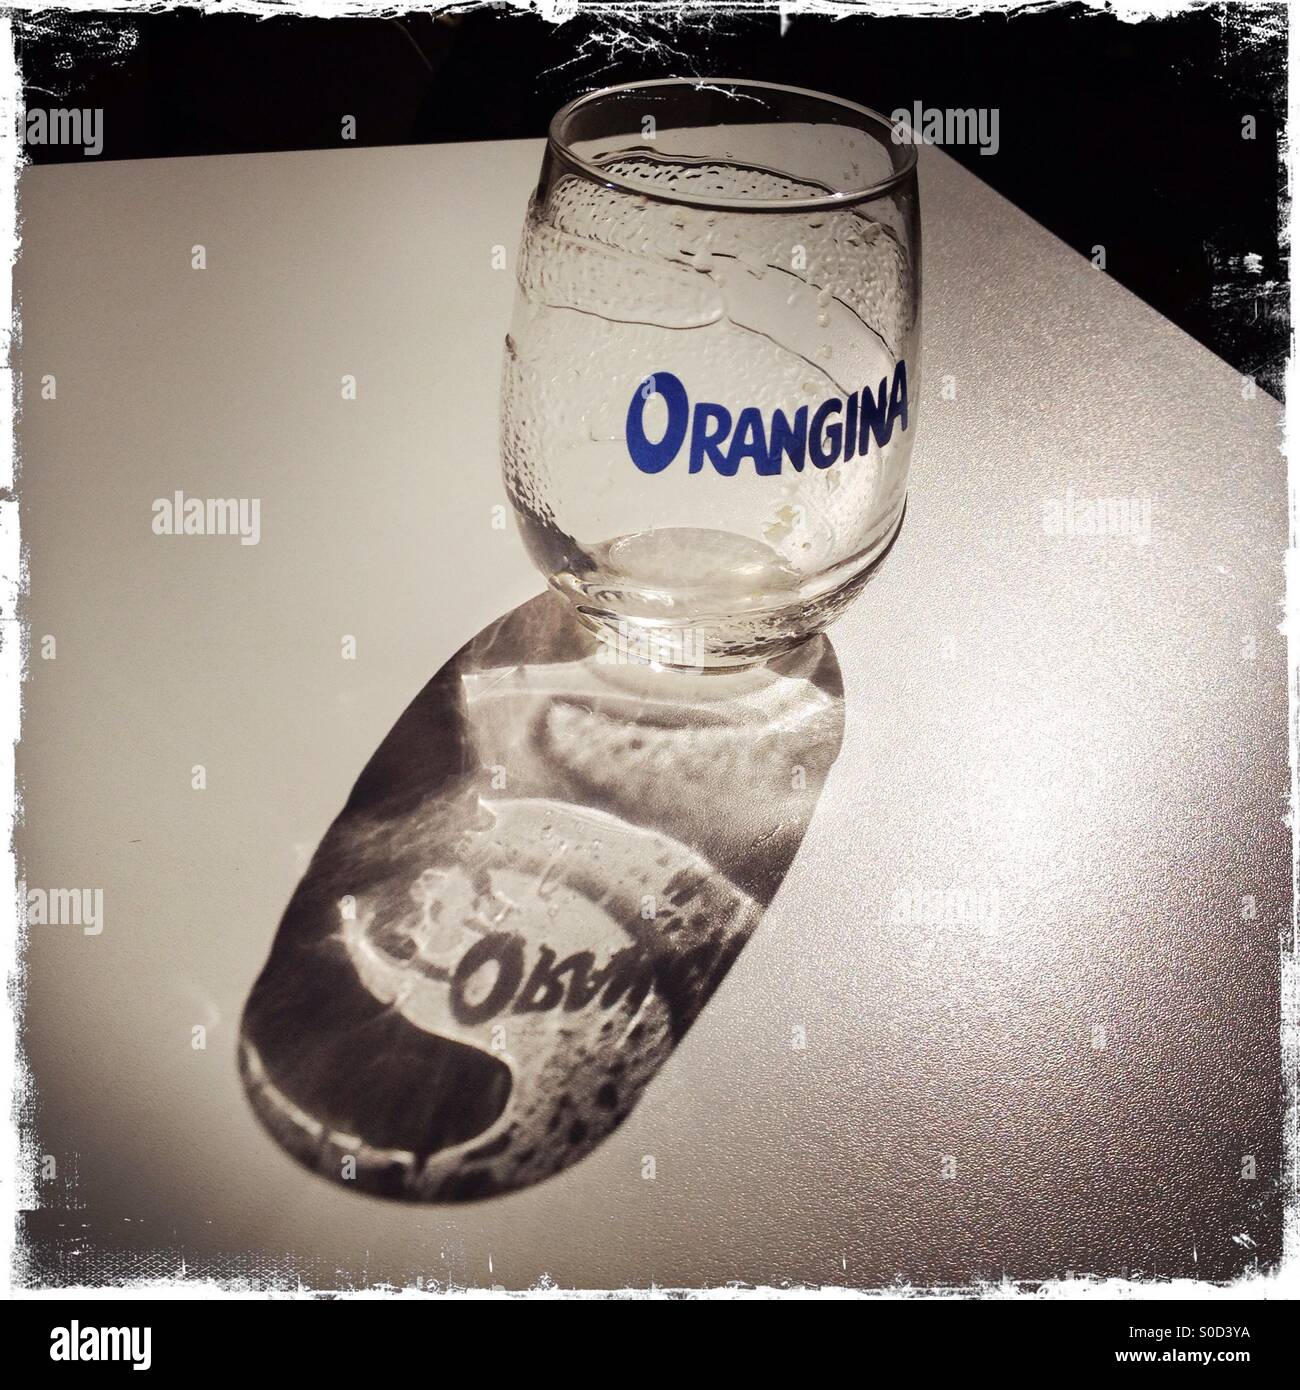 Shadow of an empty glass of Orangina on a French cafe table in the sun. - Stock Image